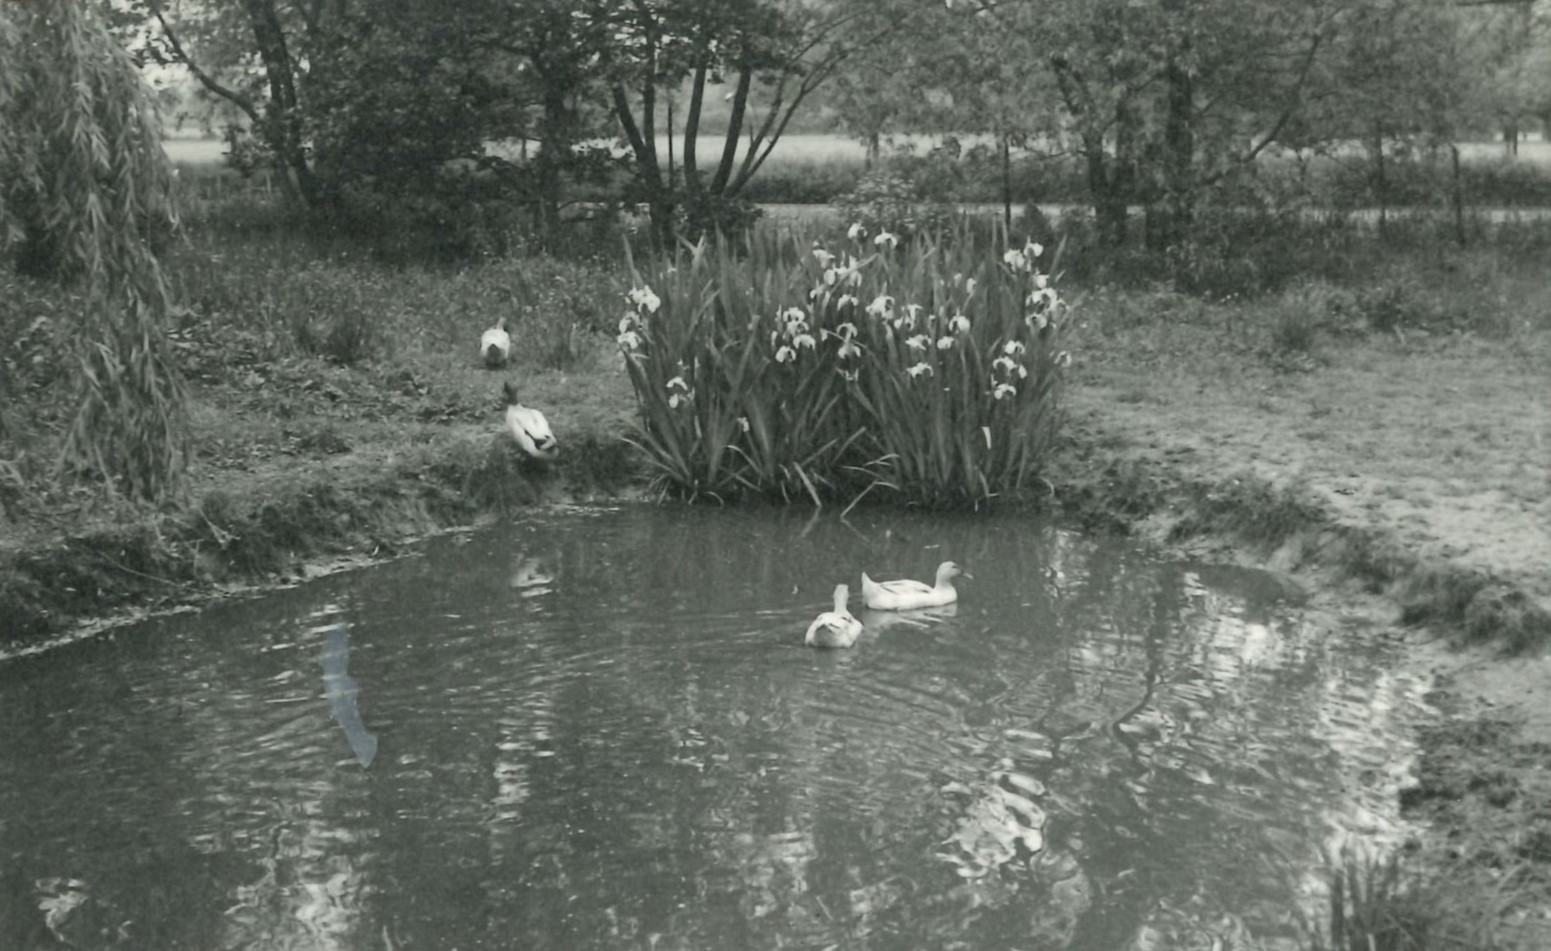 Monochrome photograph of a duck pond at LMH.